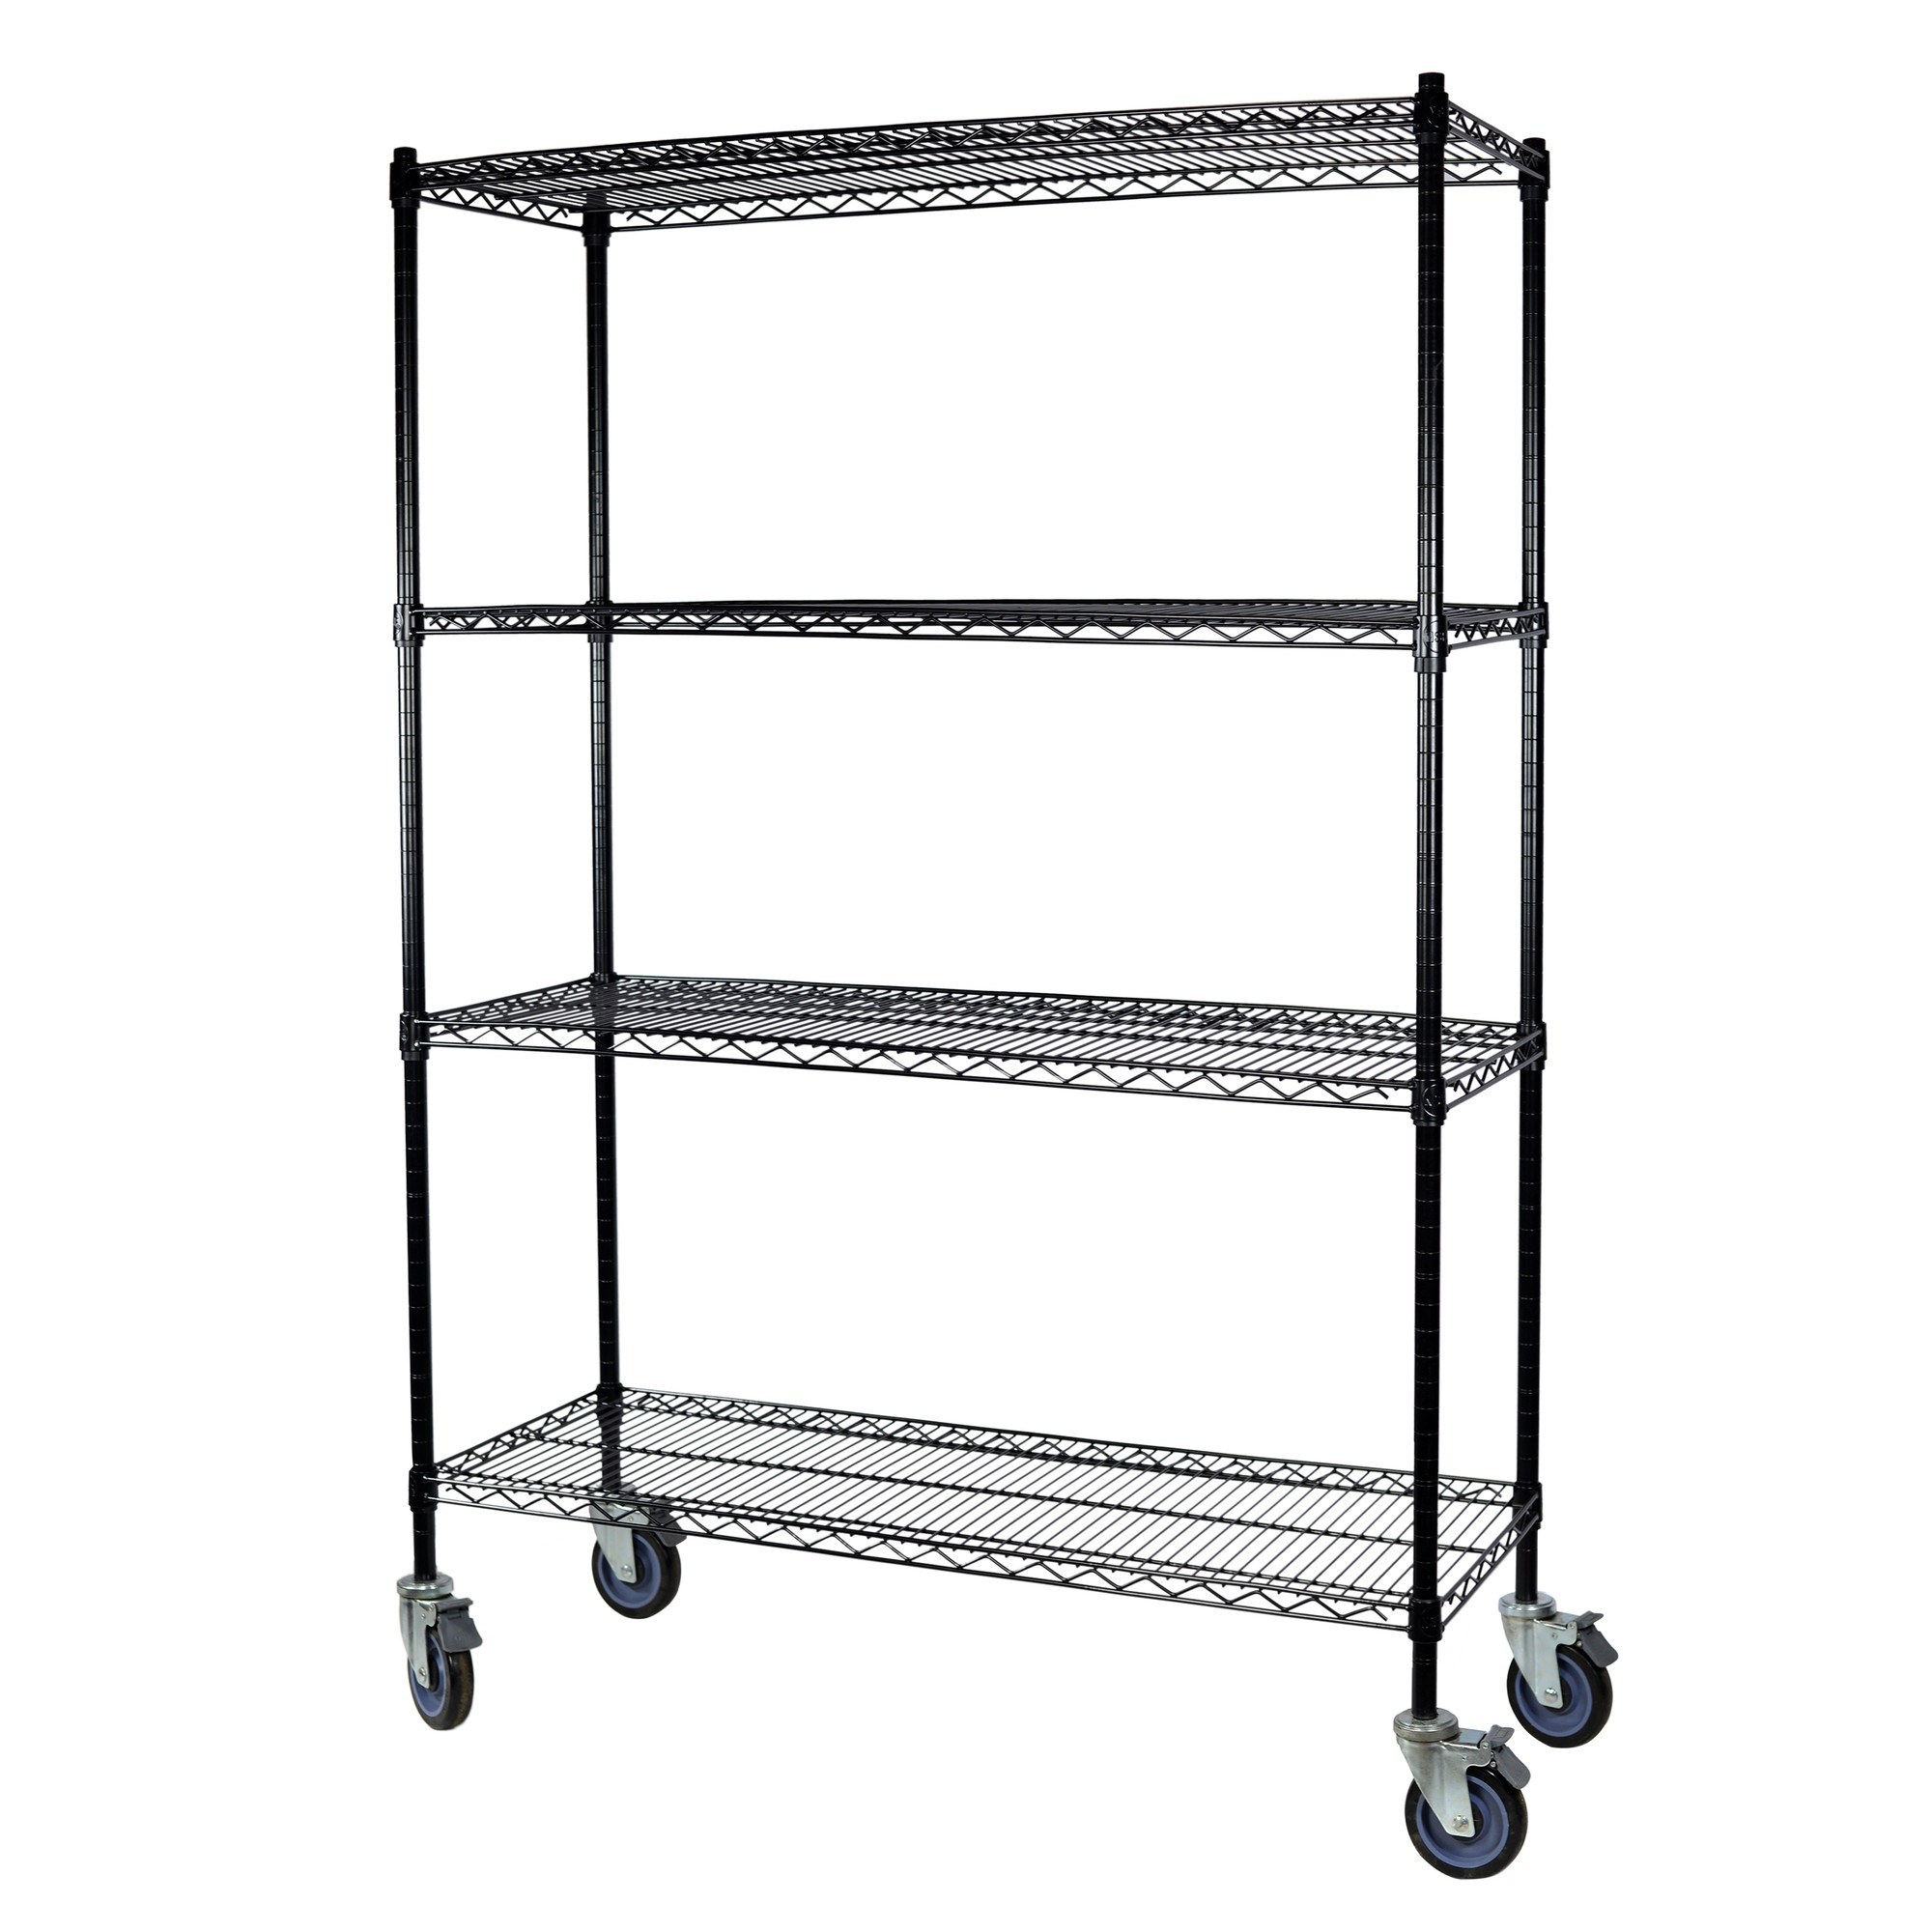 Storage Max Black Wire Shelving with Wheels, 18 x 36 x 74, 4 Shelves